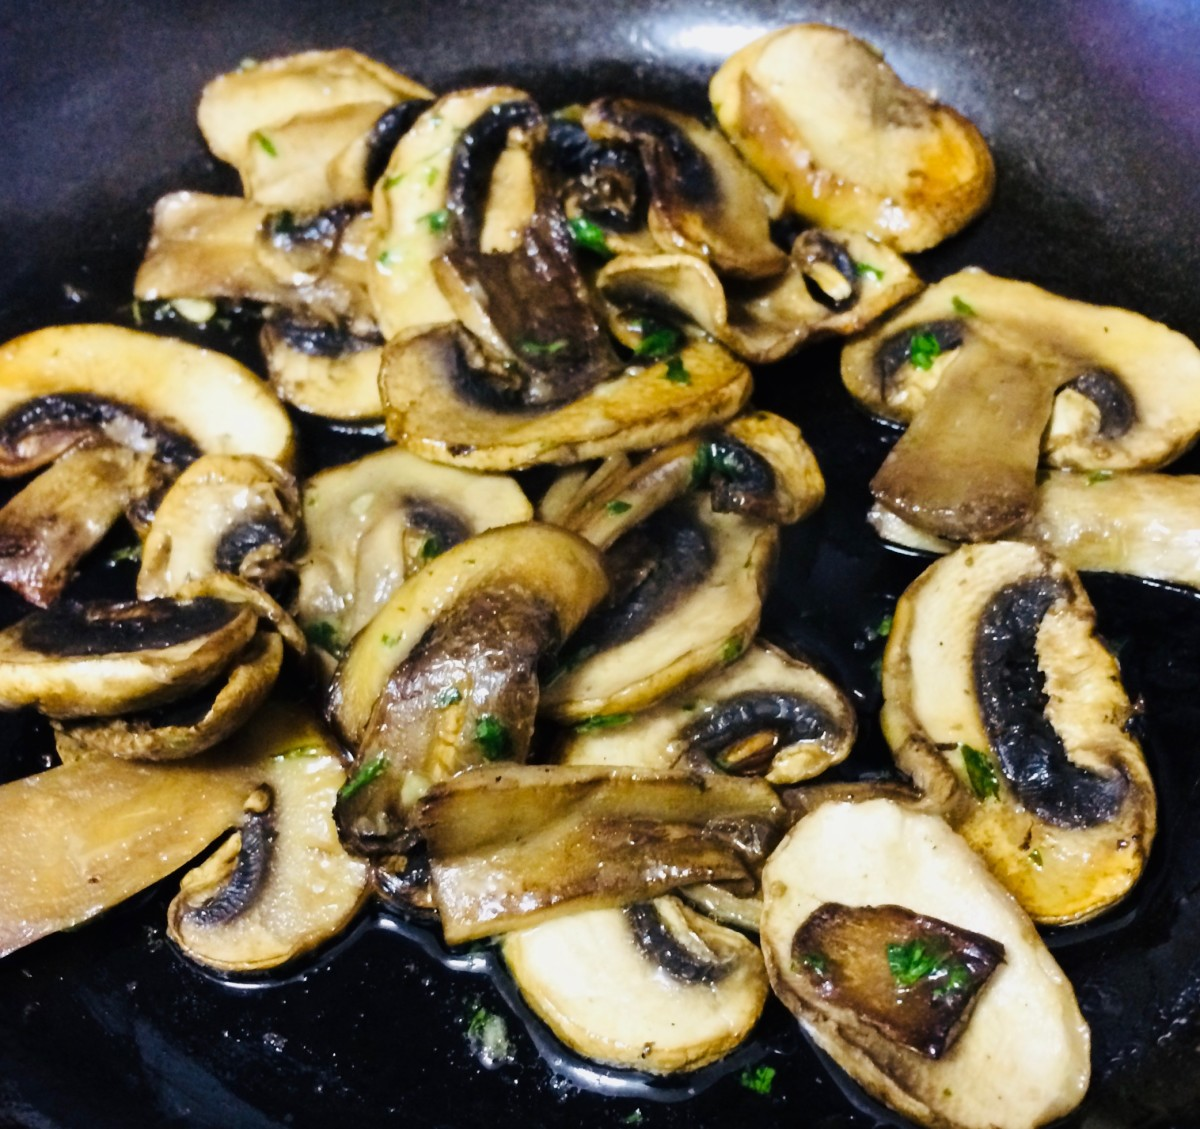 Delicious Mushrooms in Garlic Butter